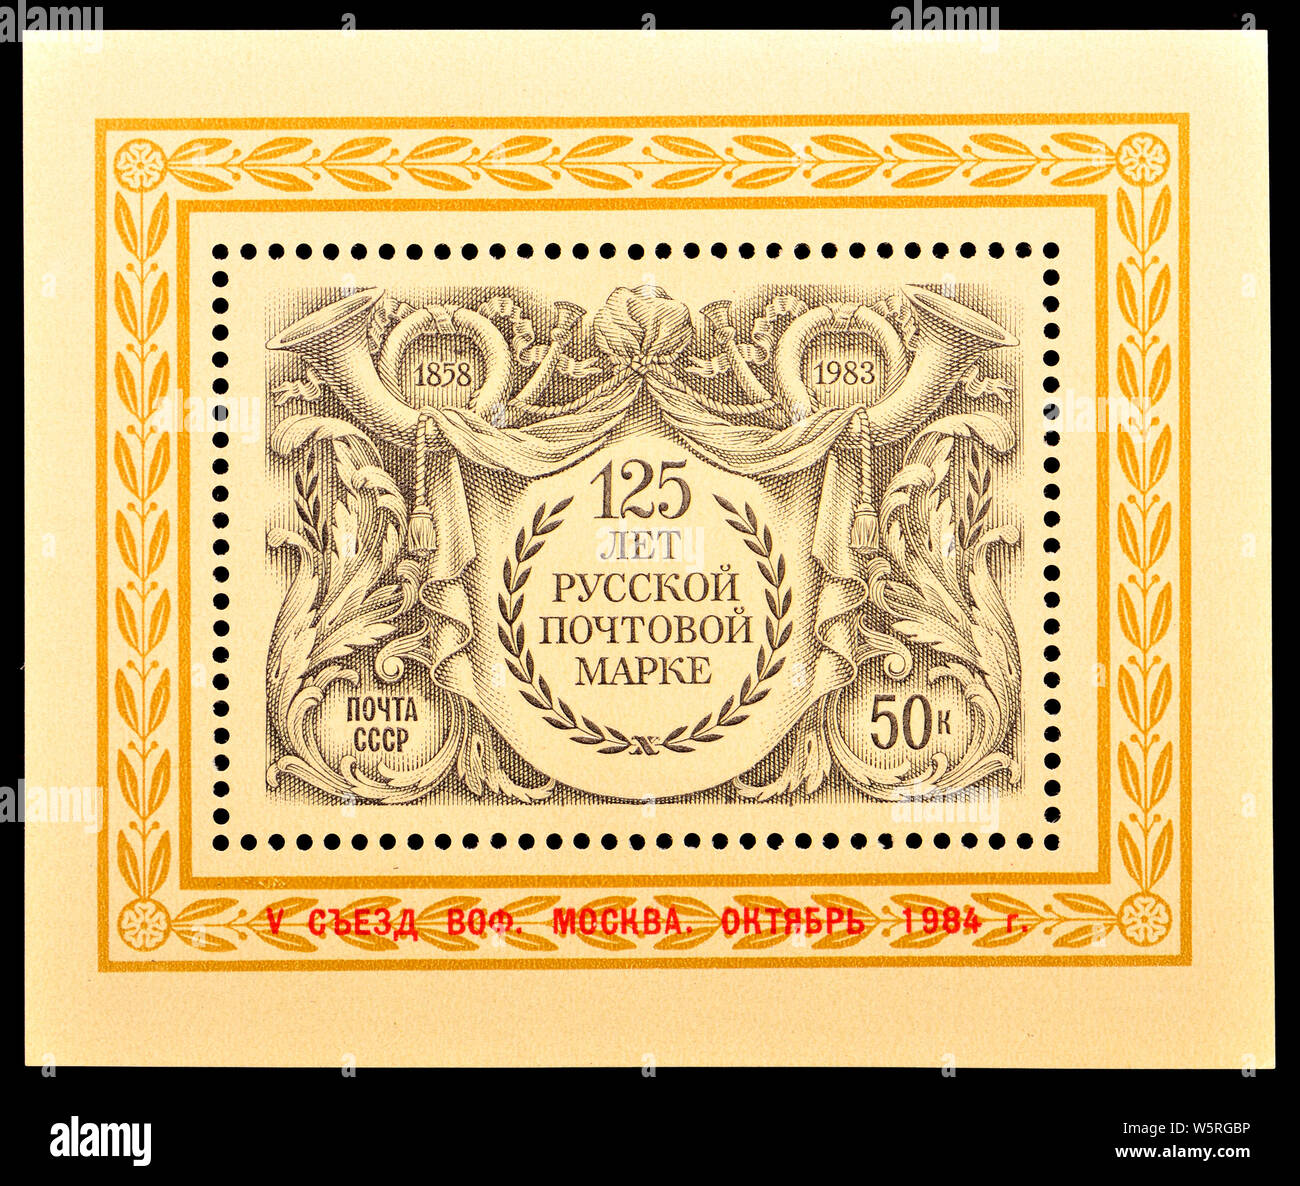 Russian Postage Stamp Stock Photos & Russian Postage Stamp